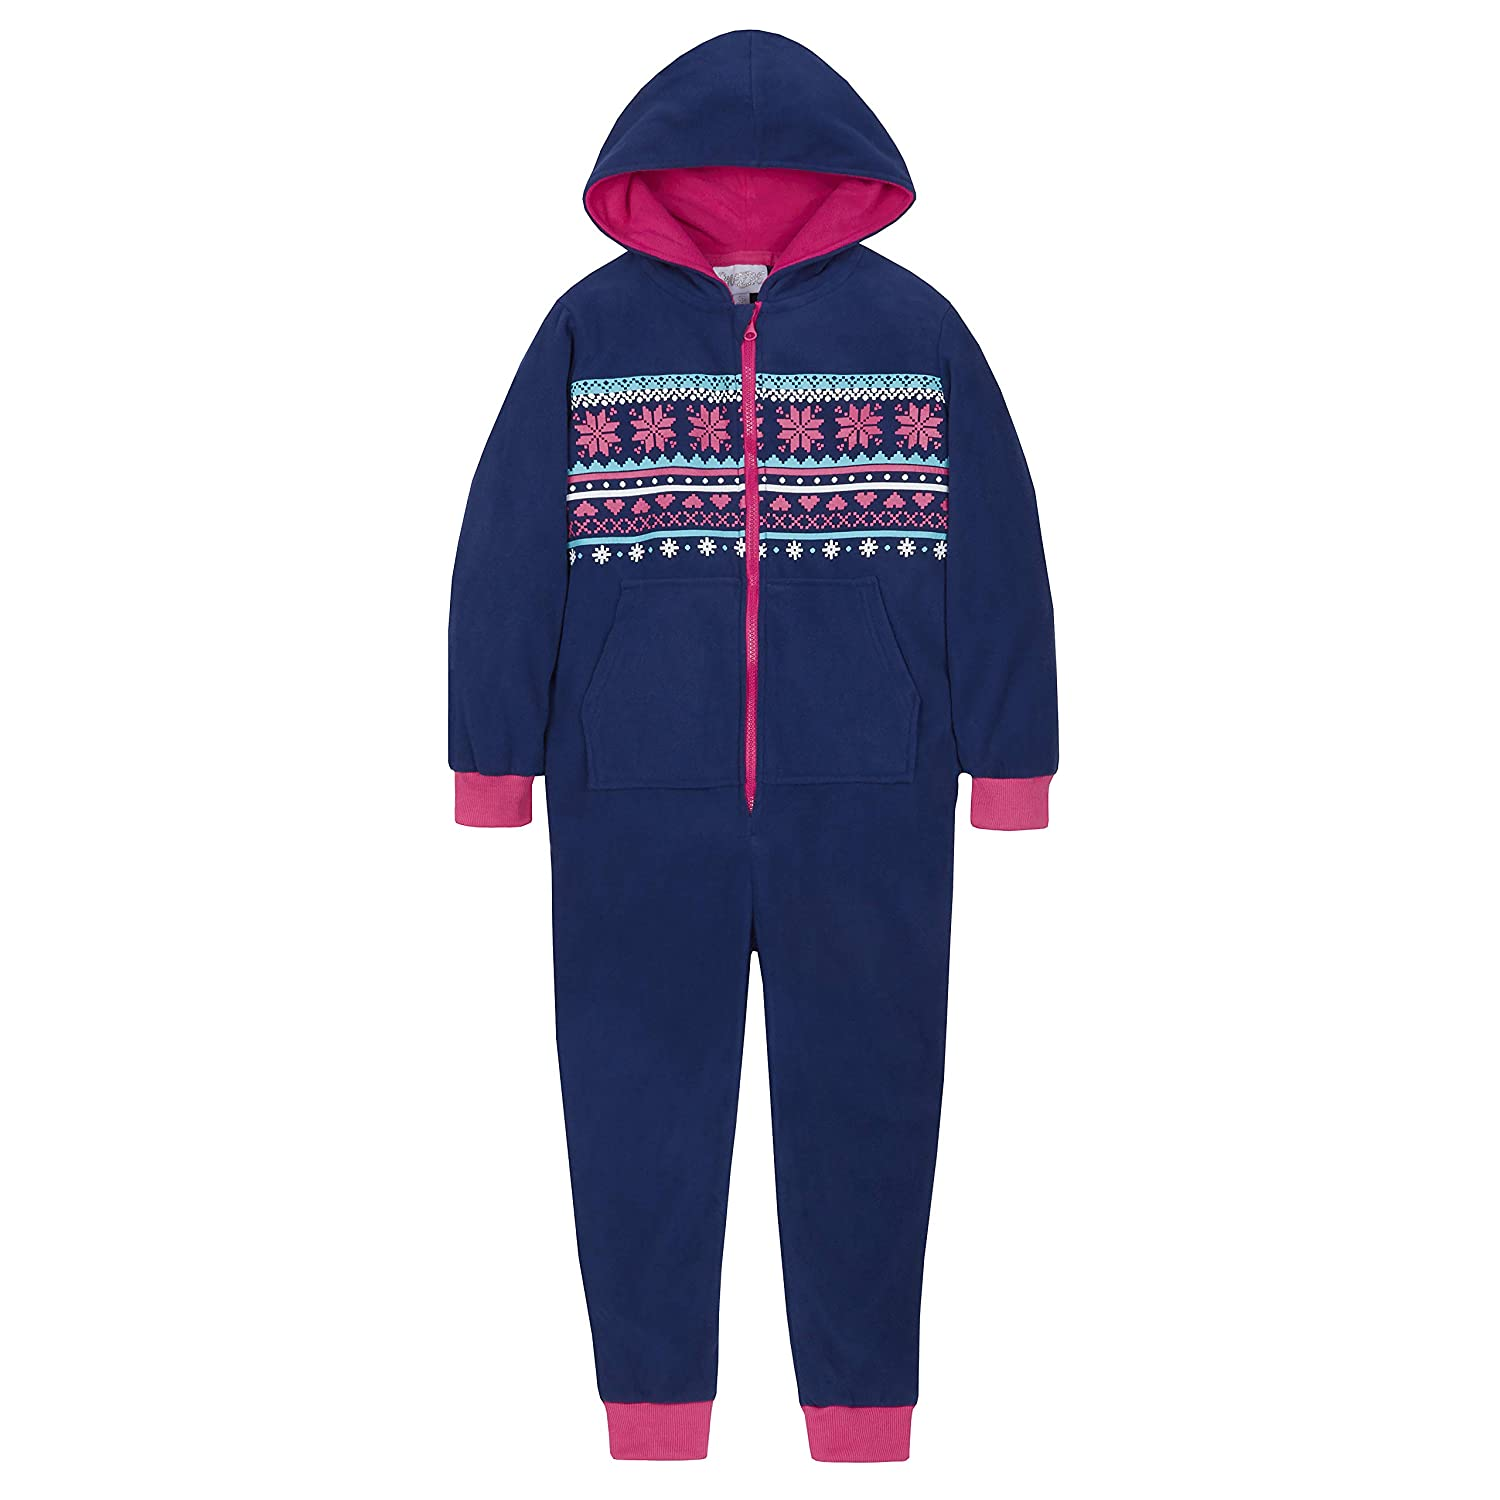 Onezee Girls Fair Isle Pattern All In One Fleece Hooded Jumpsuit with Pockets